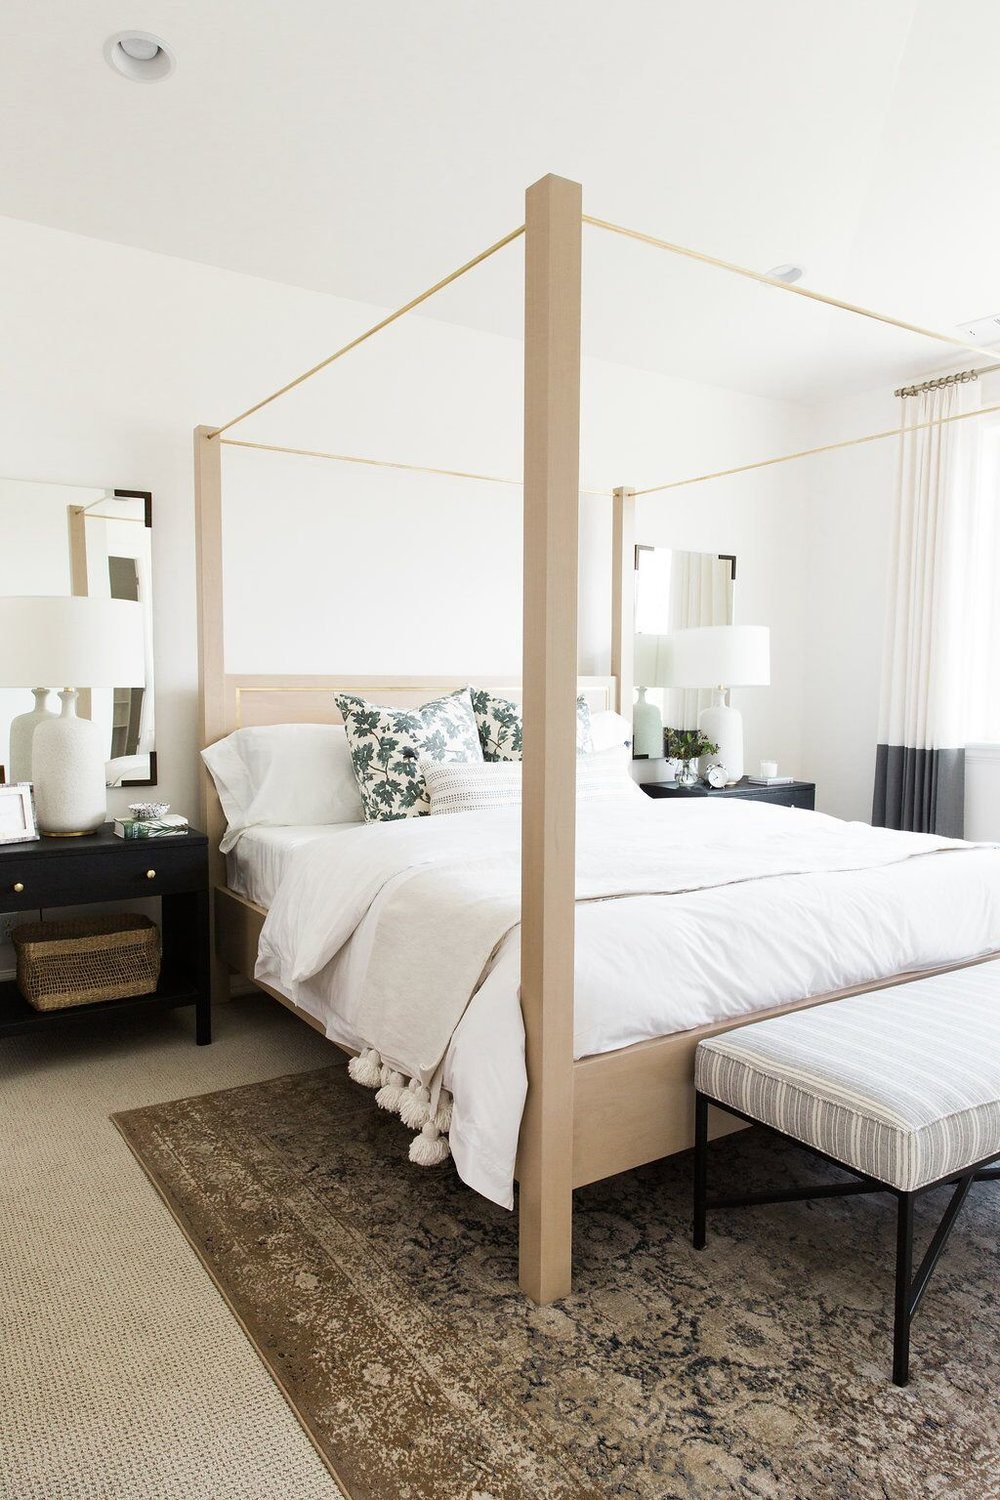 A canopy bed anchors the space adds height and gives a room a grandeur focal point to love. & Trends We love: Canopy Beds \u2014 STUDIO MCGEE